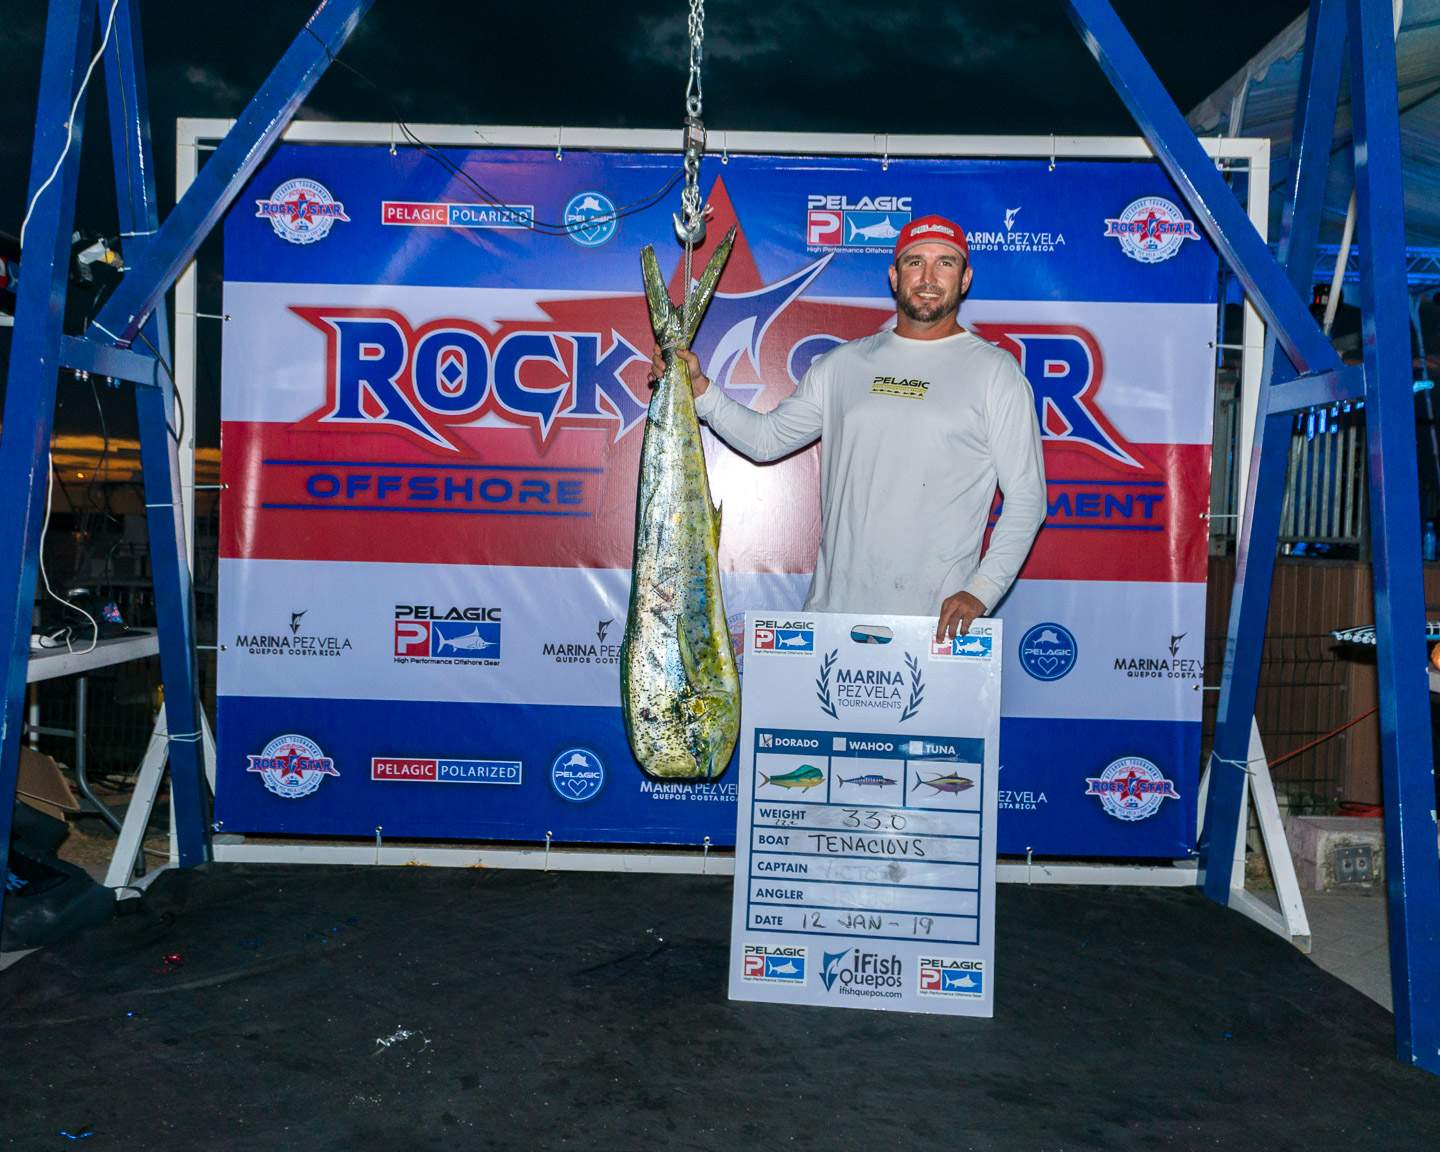 2019 Pelagic Rockstar Offshore Tournament Tenacious Weigh In